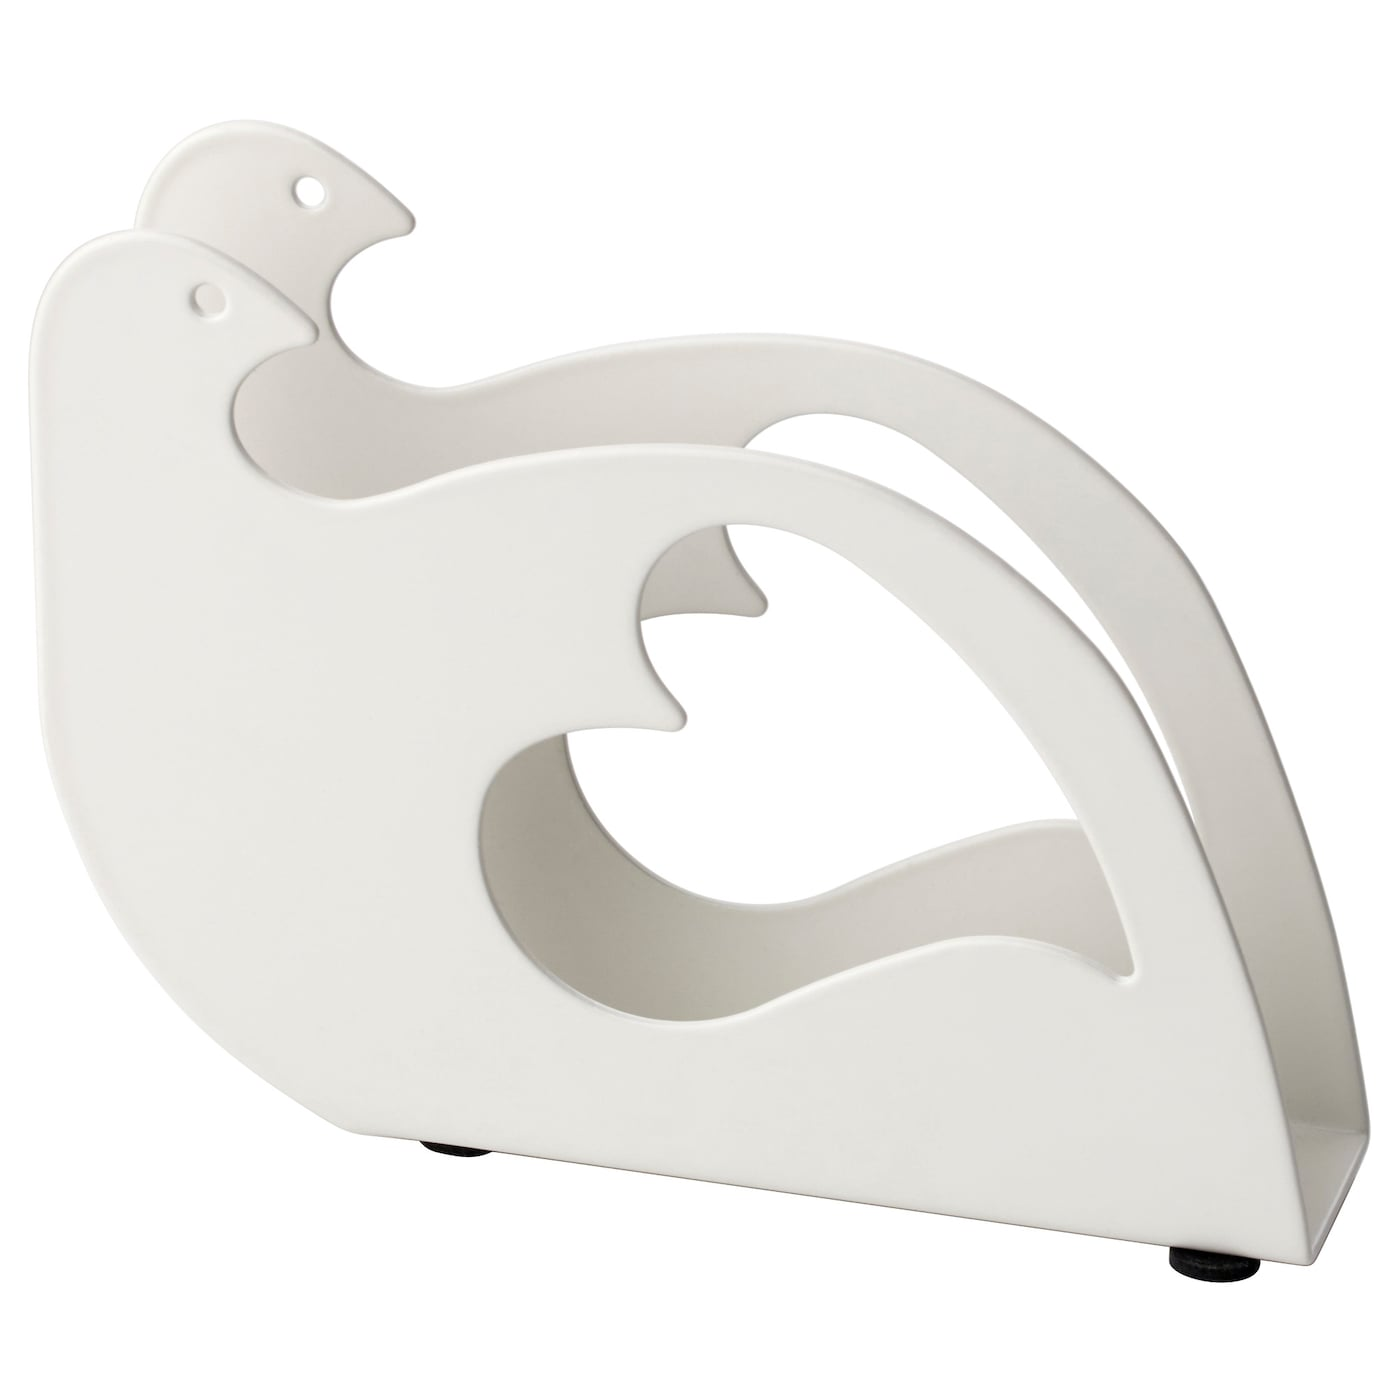 IKEA POPPIG napkin holder